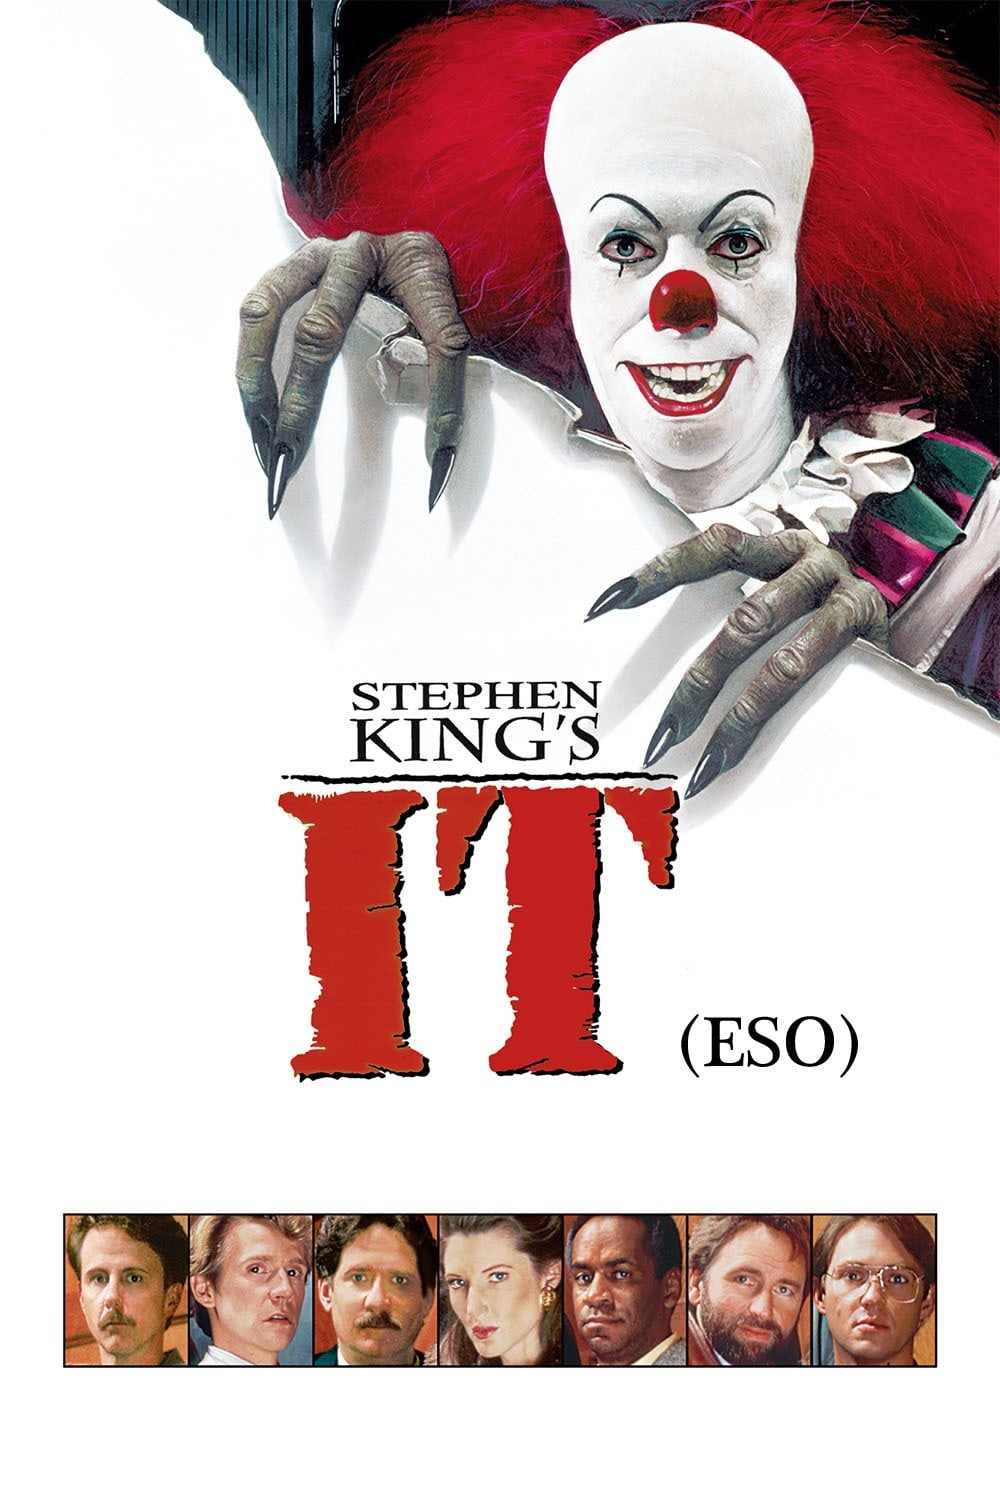 Póster It (Eso)